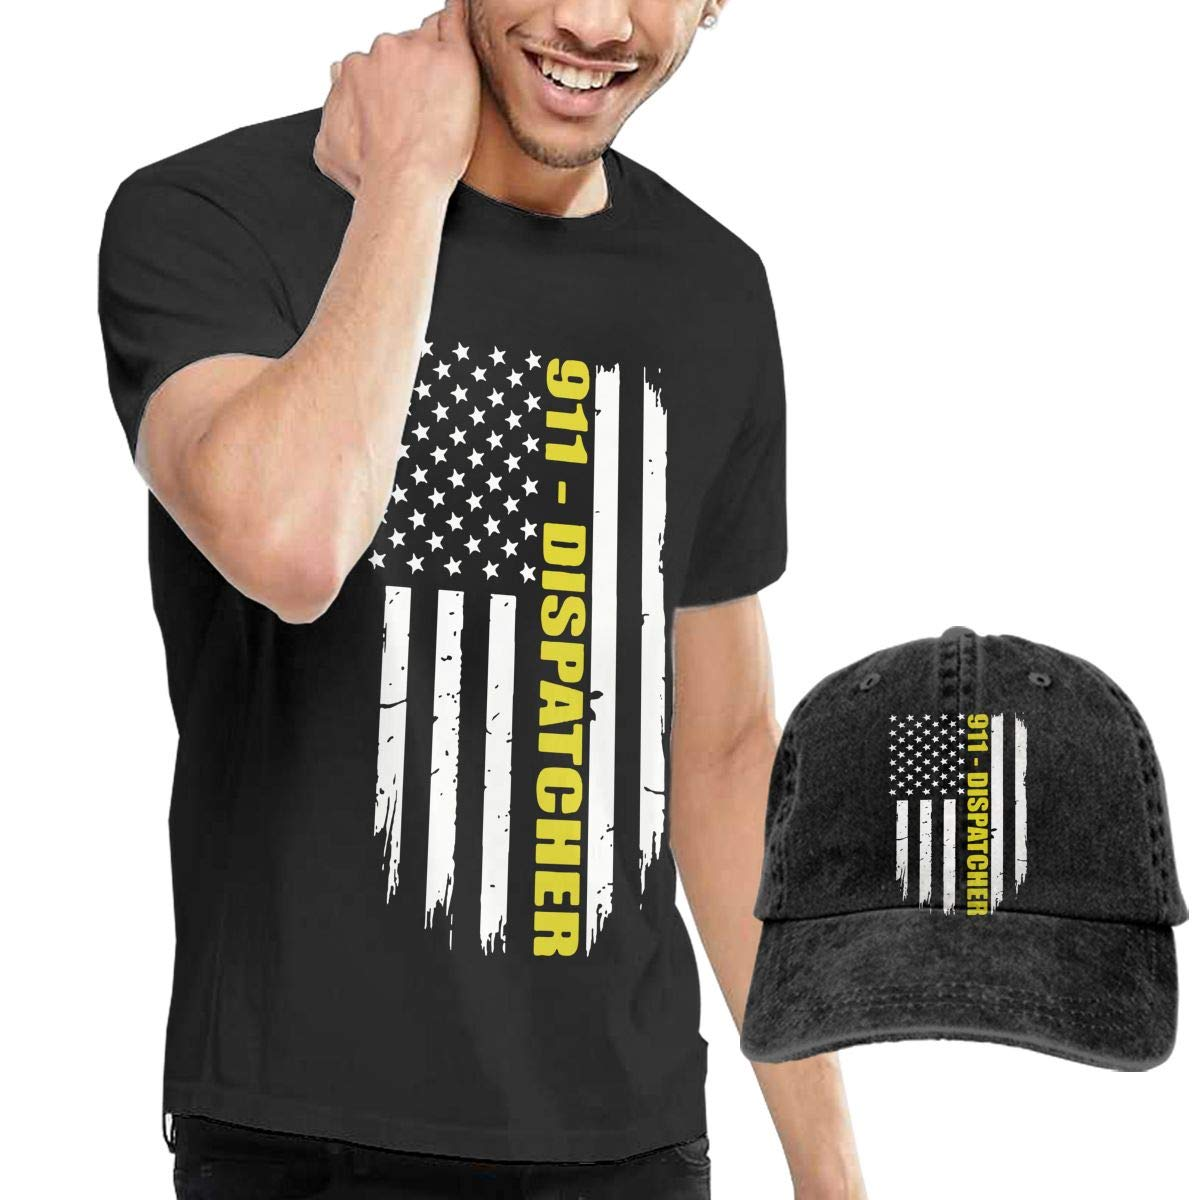 WWTBBJ-B 911 Dispatcher Gift Thin Gold Line Flag Adult Mens Casual T-Shirts and Outdoor Jean Headgear